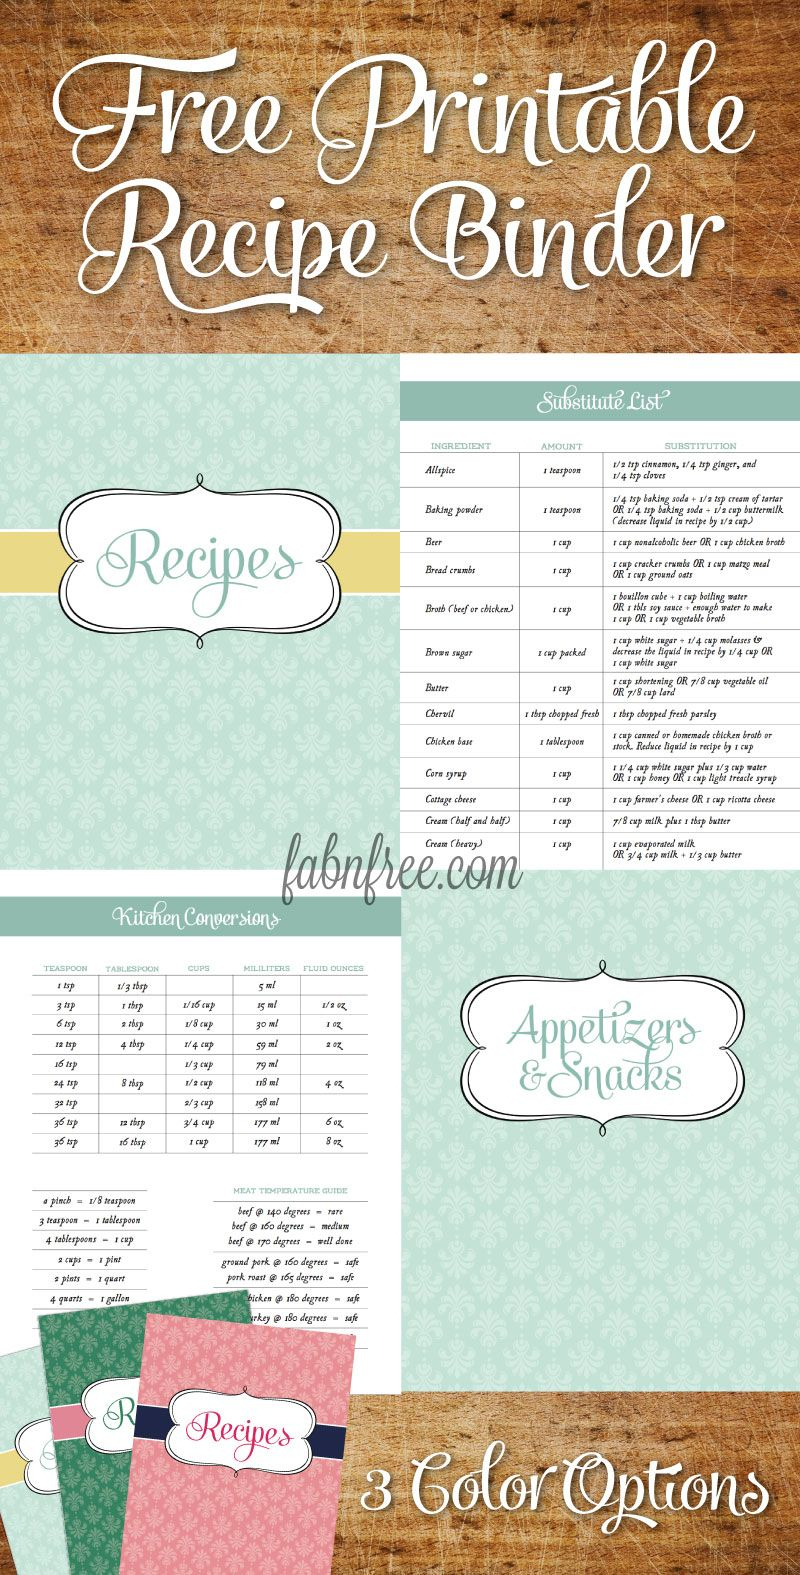 Free Recipe Binder In 3 Color Options | Recipe Binder Ideas - Free Printable Recipe Binder